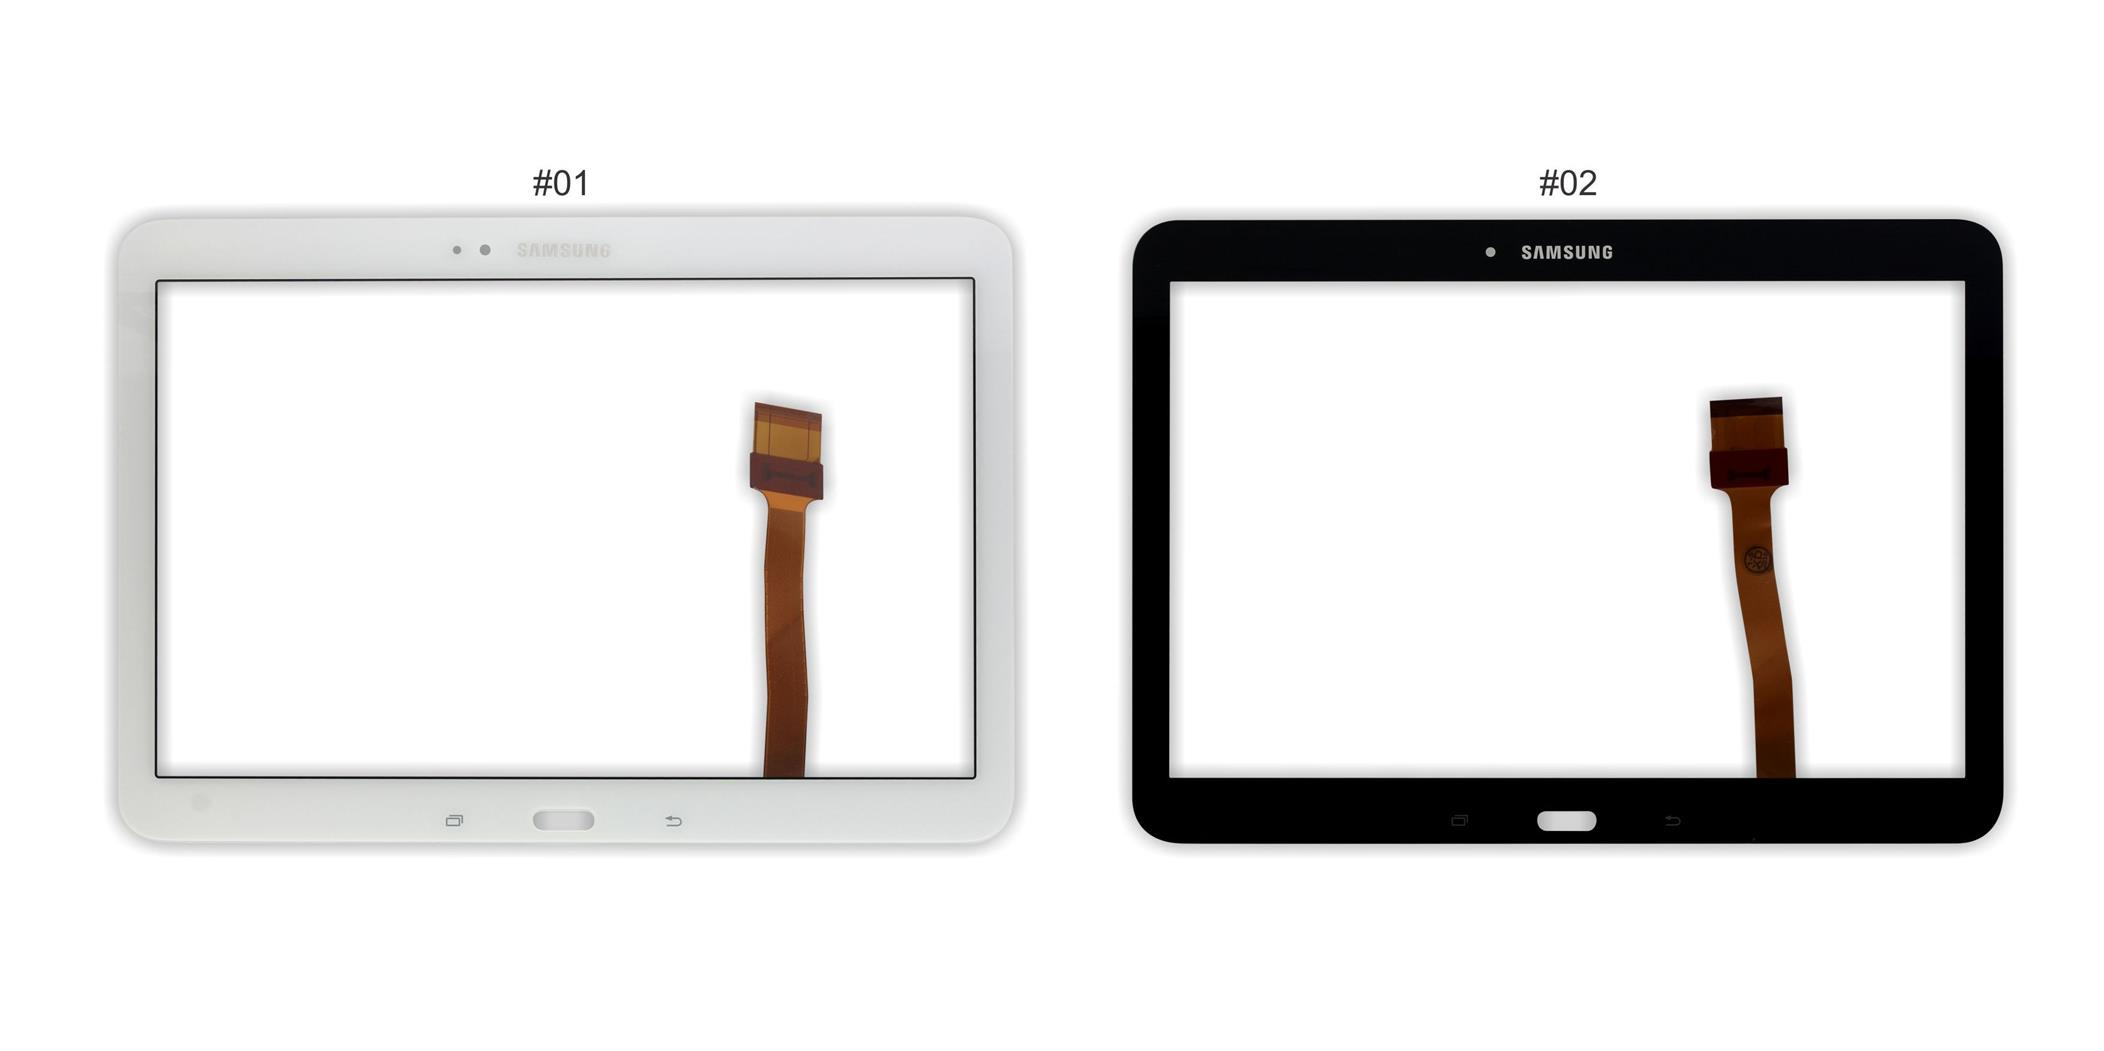 Touch Screen Dizitiger For Samsung Tab 3 Lite,3V,4 7.0/10.1,T2105,T530